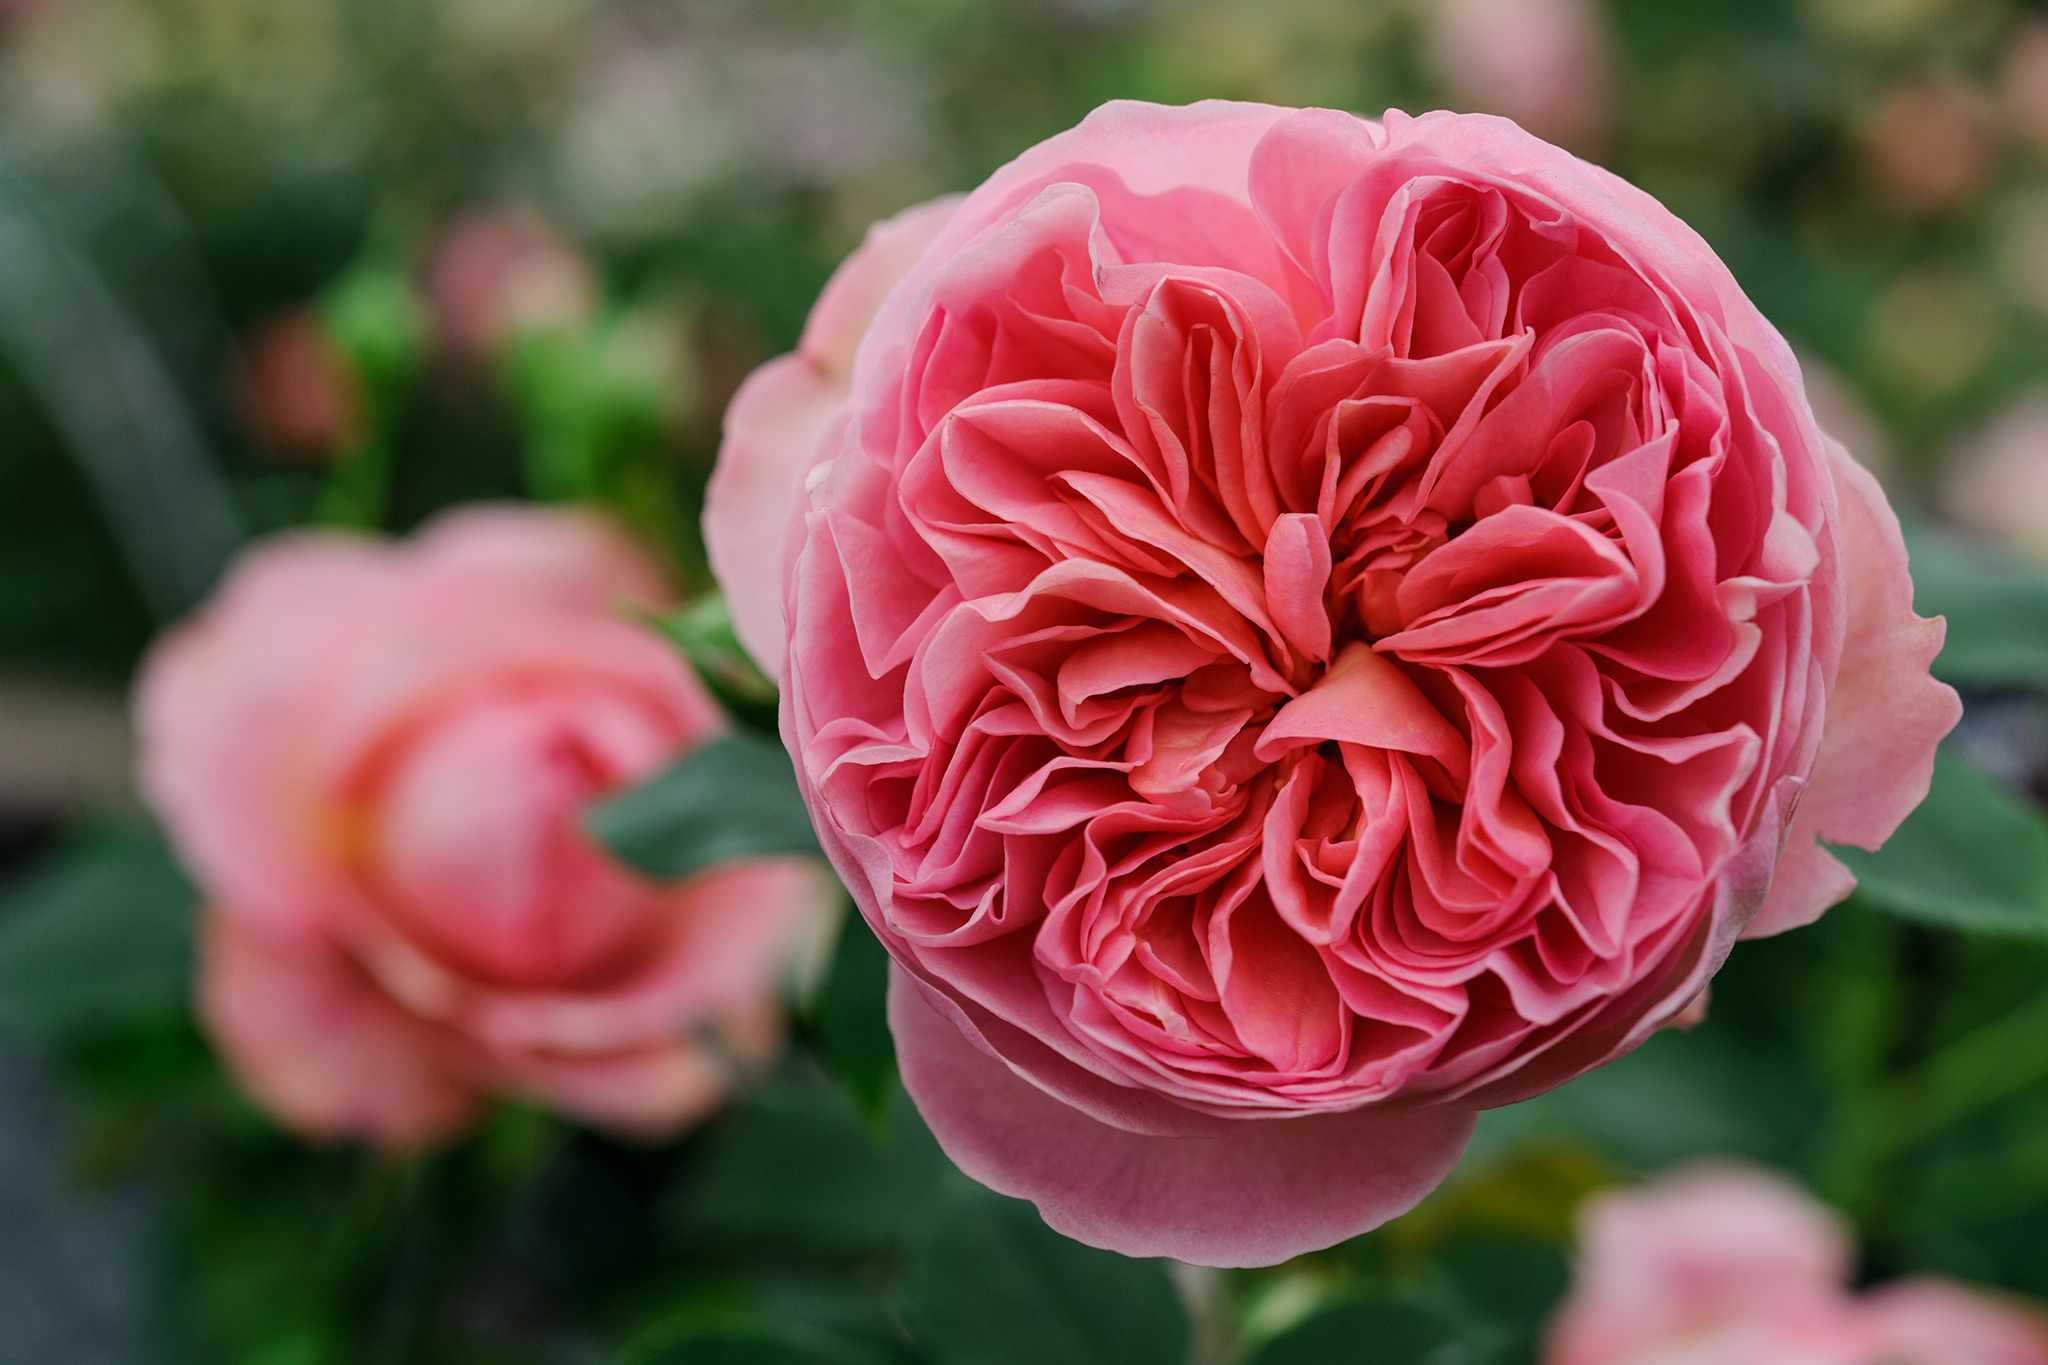 Five Ways to Grow Better Roses